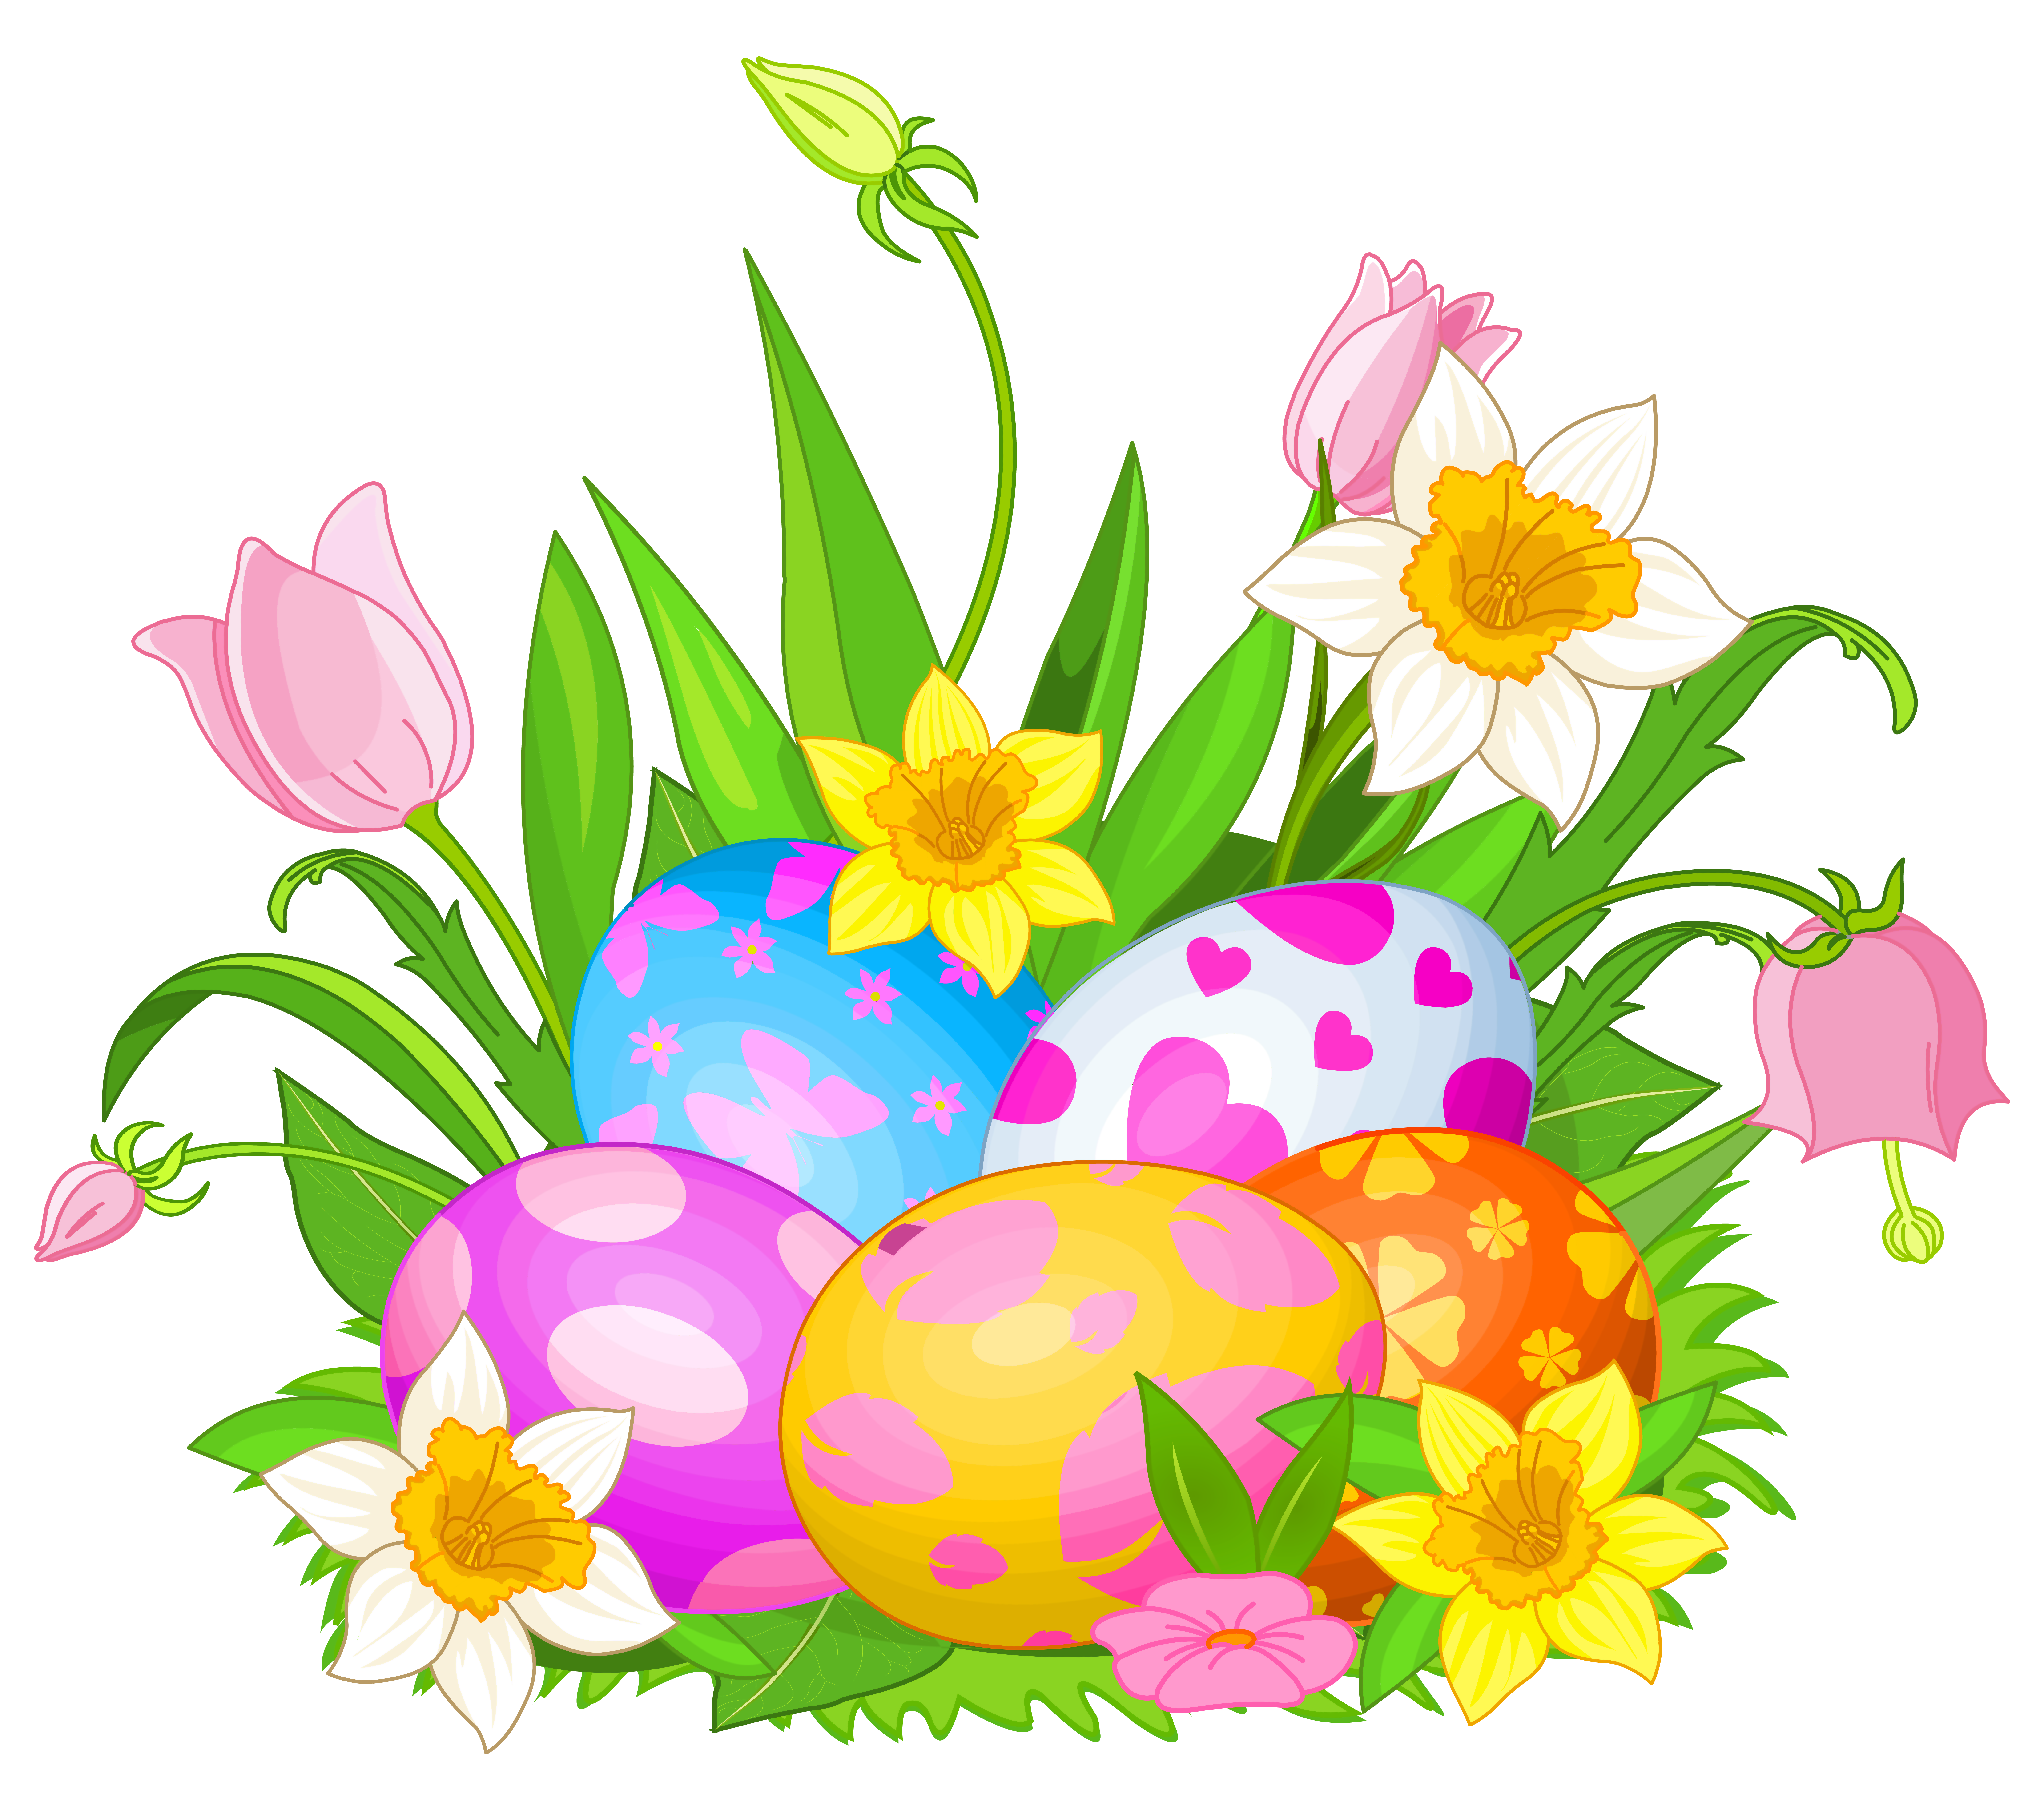 Easter clipart flower png image library stock Easter Eggs and Flowers PNG Clipart Picture image library stock